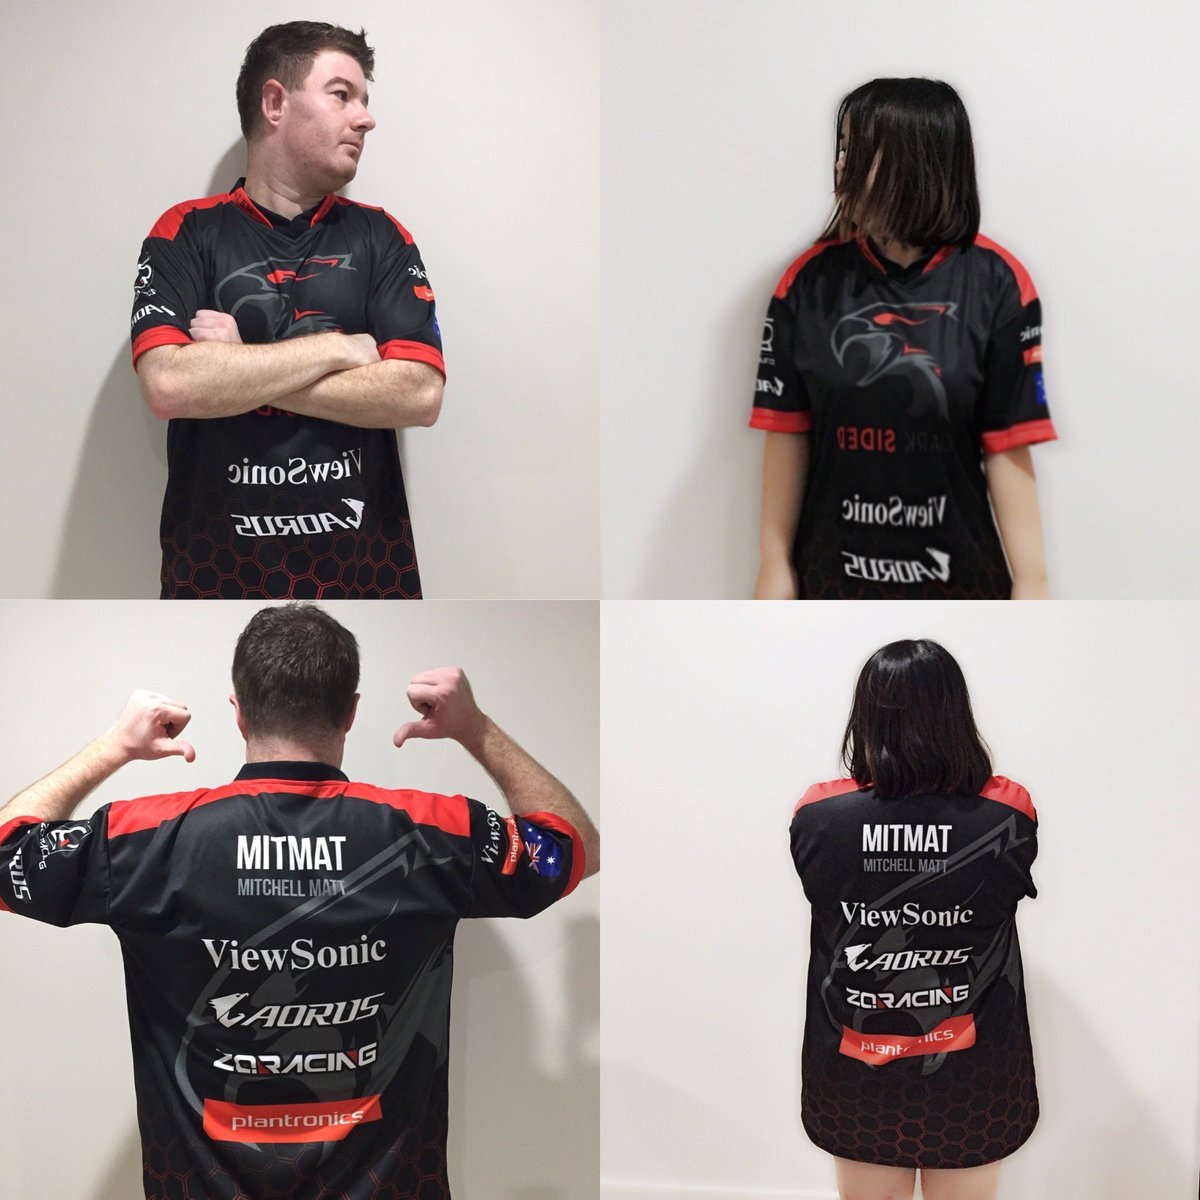 Dark Sided esports player jersey - Featuring sponsors Viewsonic, Aorus, Plantronics and ZQracing